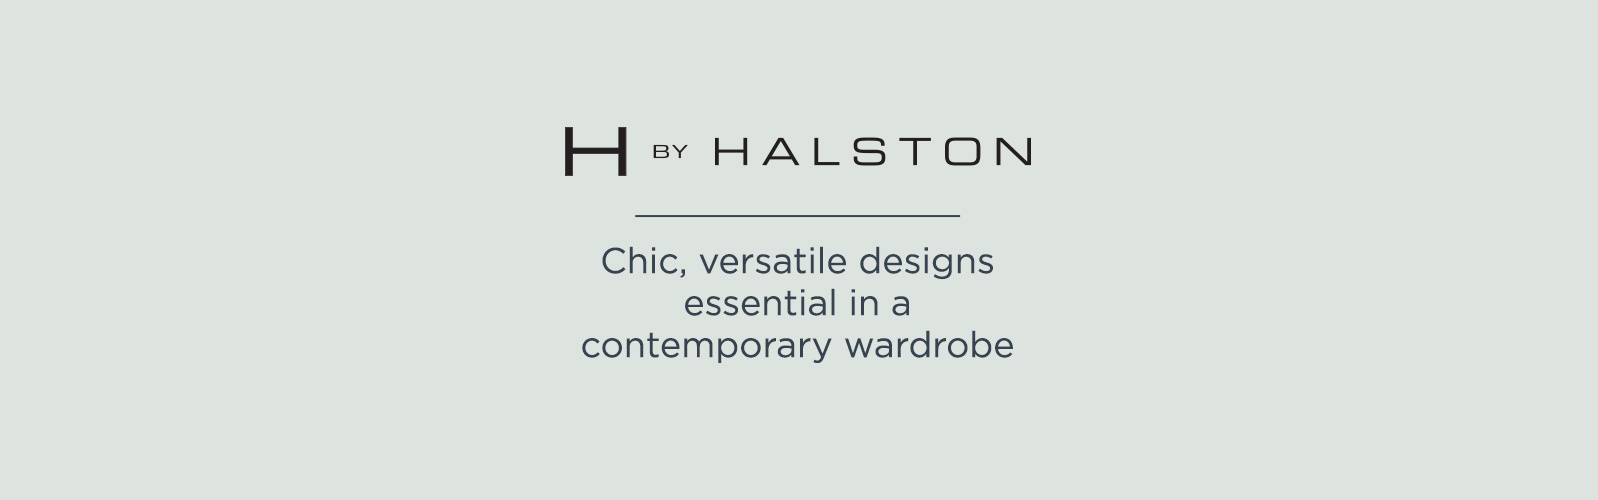 H by Halston. Chic, versatile designs essential in a contemporary wardrobe